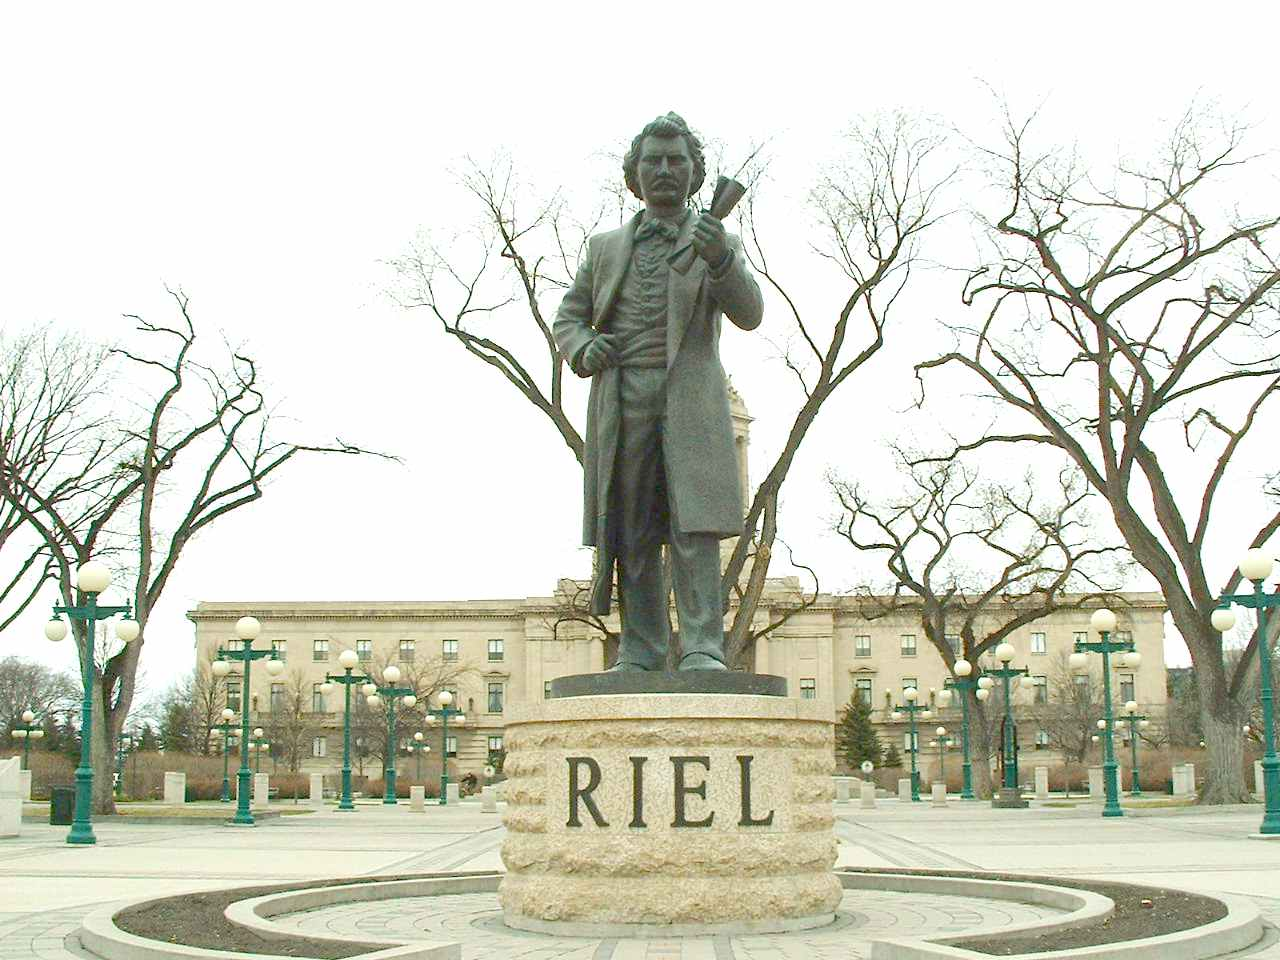 louis david riels role in the confederation of manitoba Louis riel's handwritten poems displayed for the public  public opinion has changed in recent years and riel is now respected for the role in played in bringing manitoba into confederation monday's provincial holiday is named louis riel day in his honour - cbc.